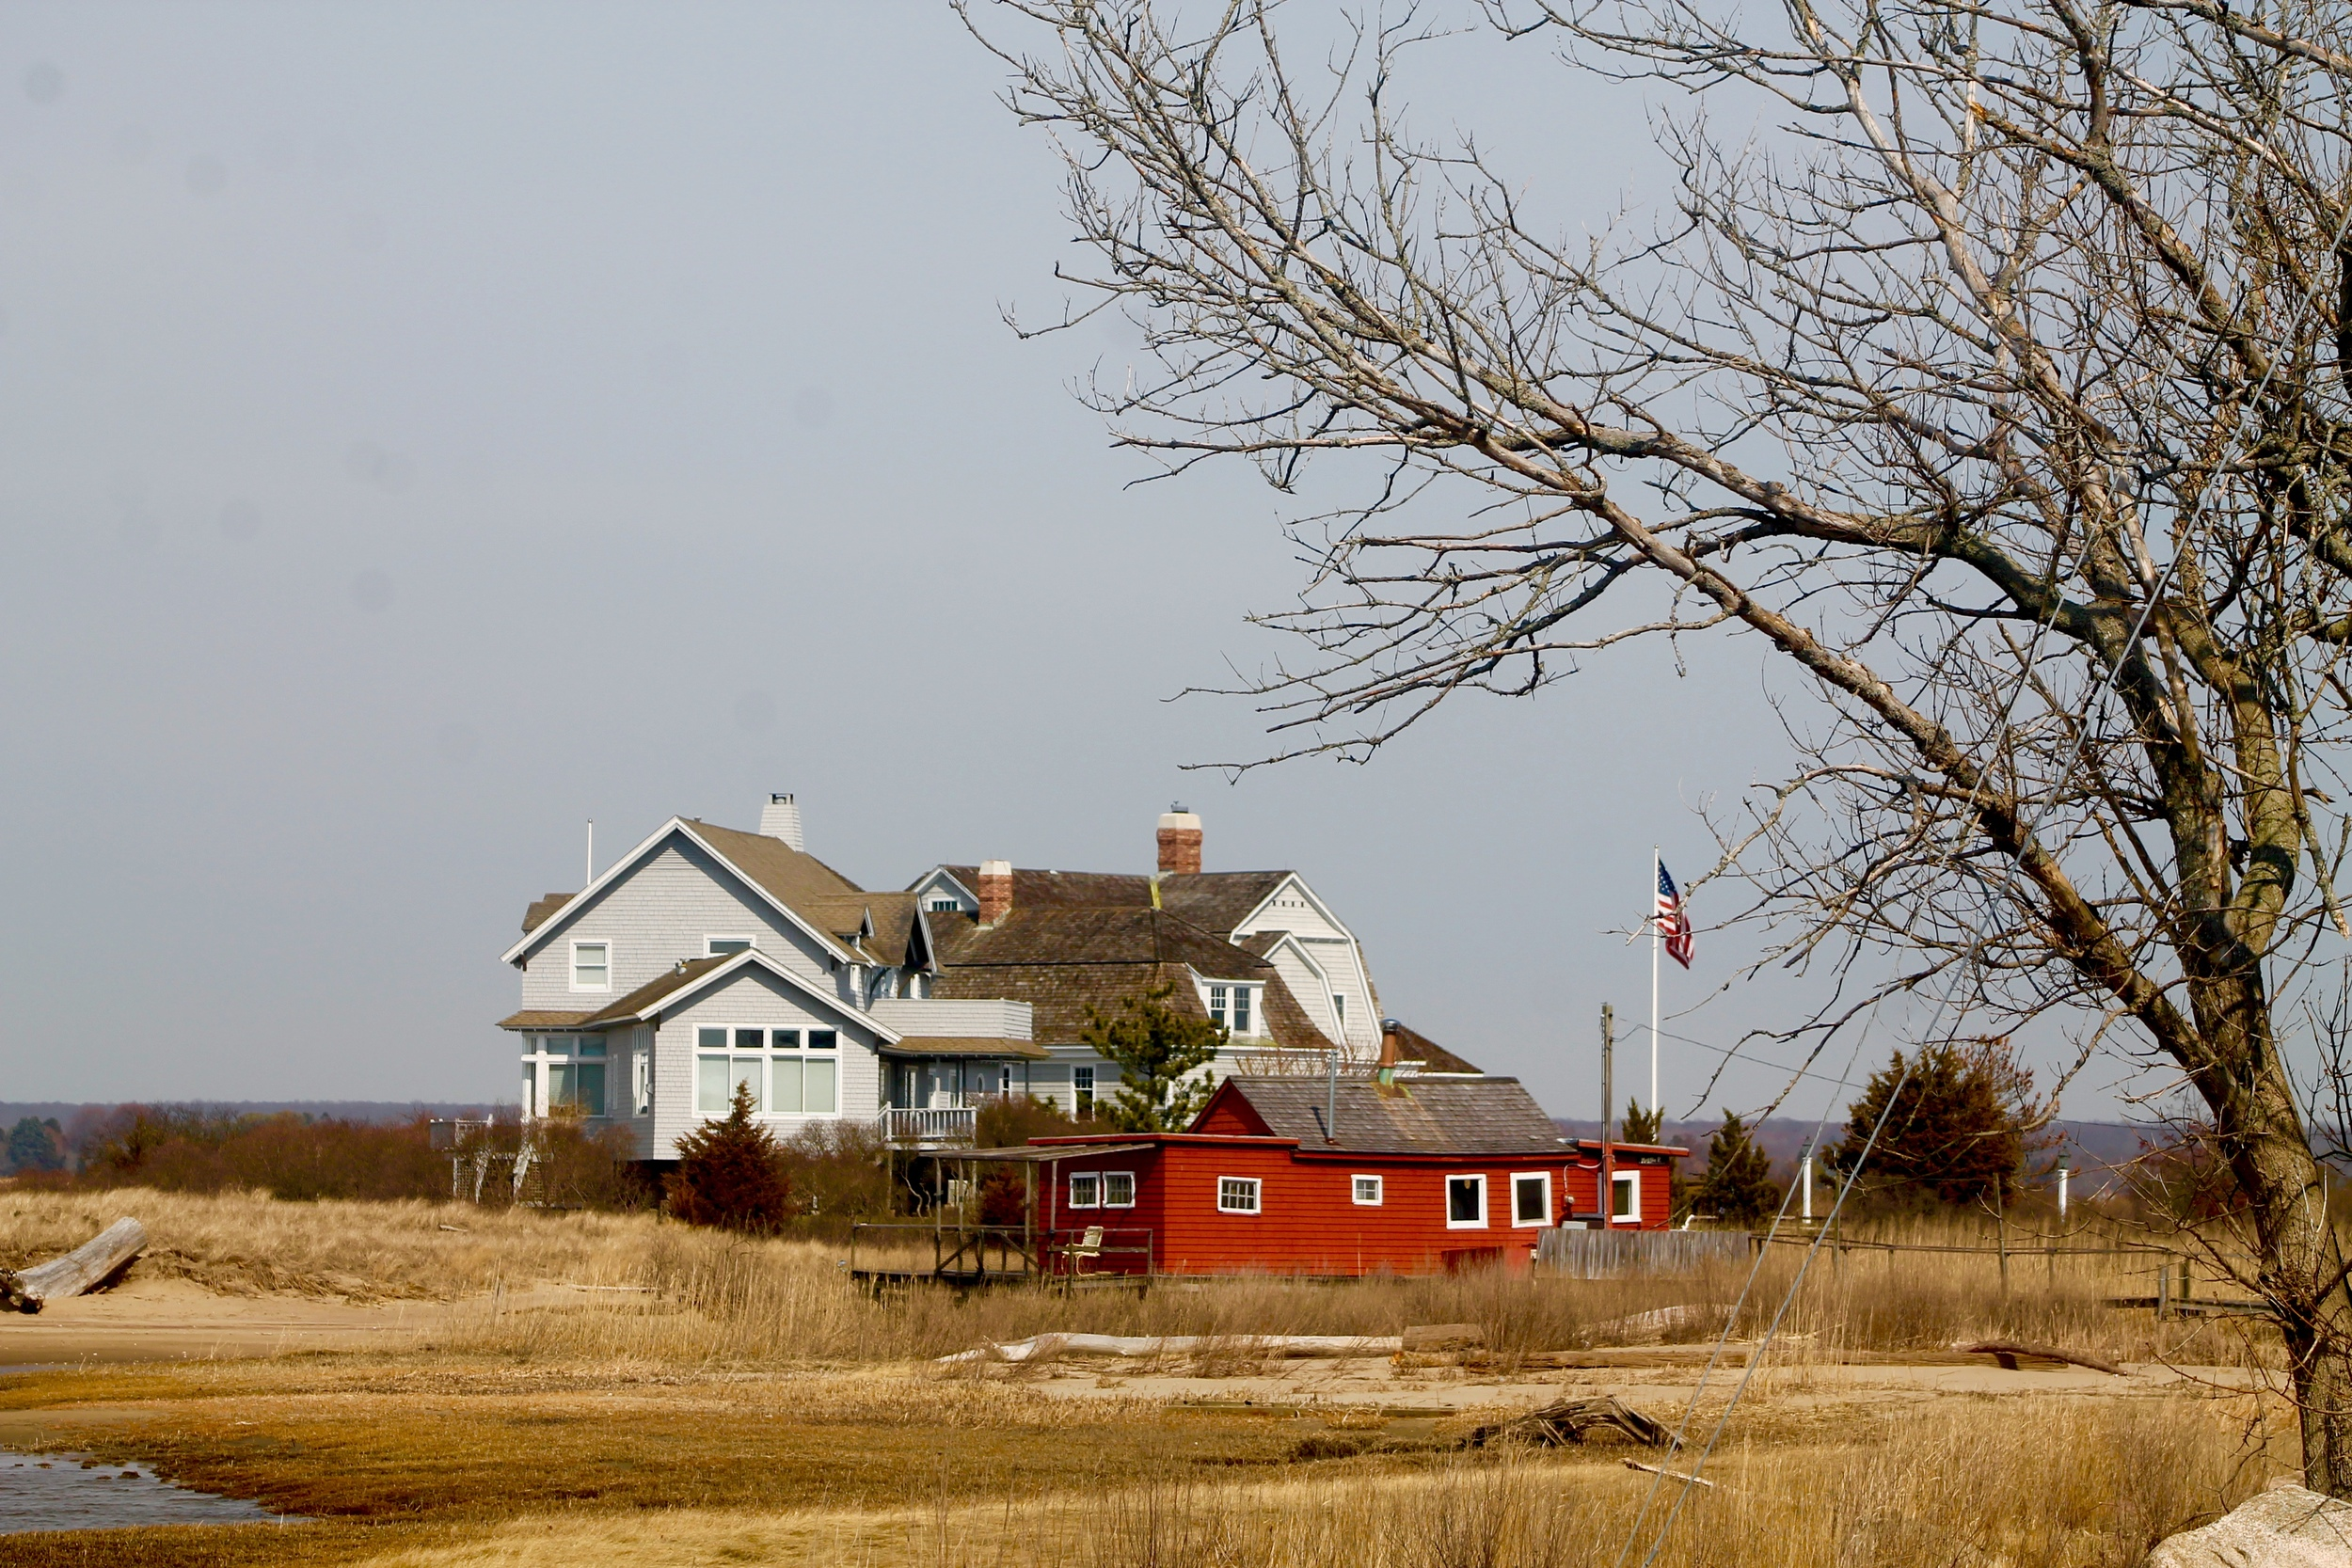 Saybrook Point Inn and Spa :: A Coastal Connecticut Treasure. Image Property of Jessica Gordon Ryan/The Entertaining House